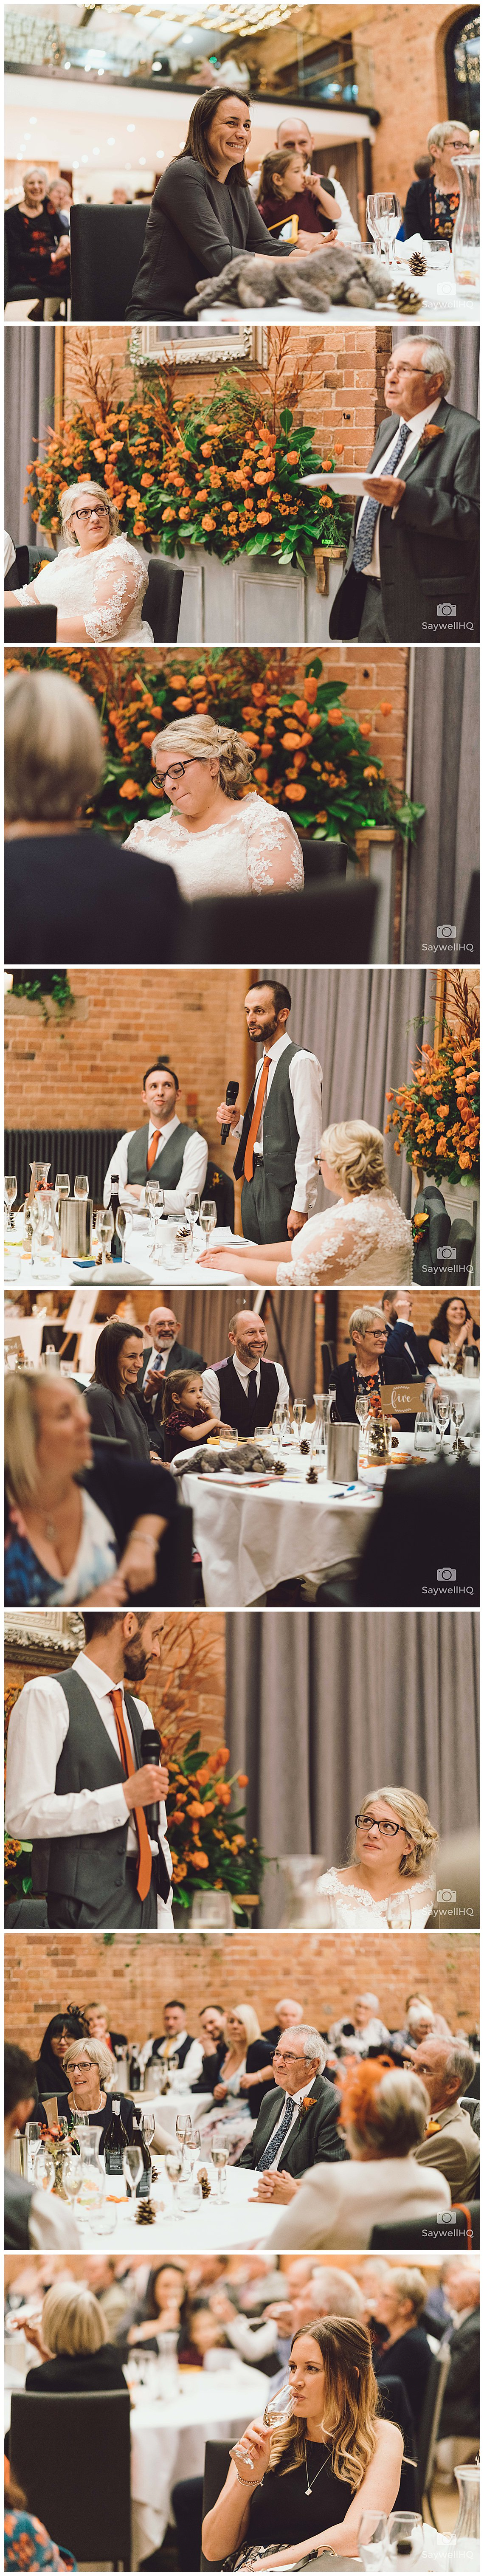 Wedding photography at Carriage Hall in Nottingham - bride and groom enjoy the speeches at their wedding at carriage hall